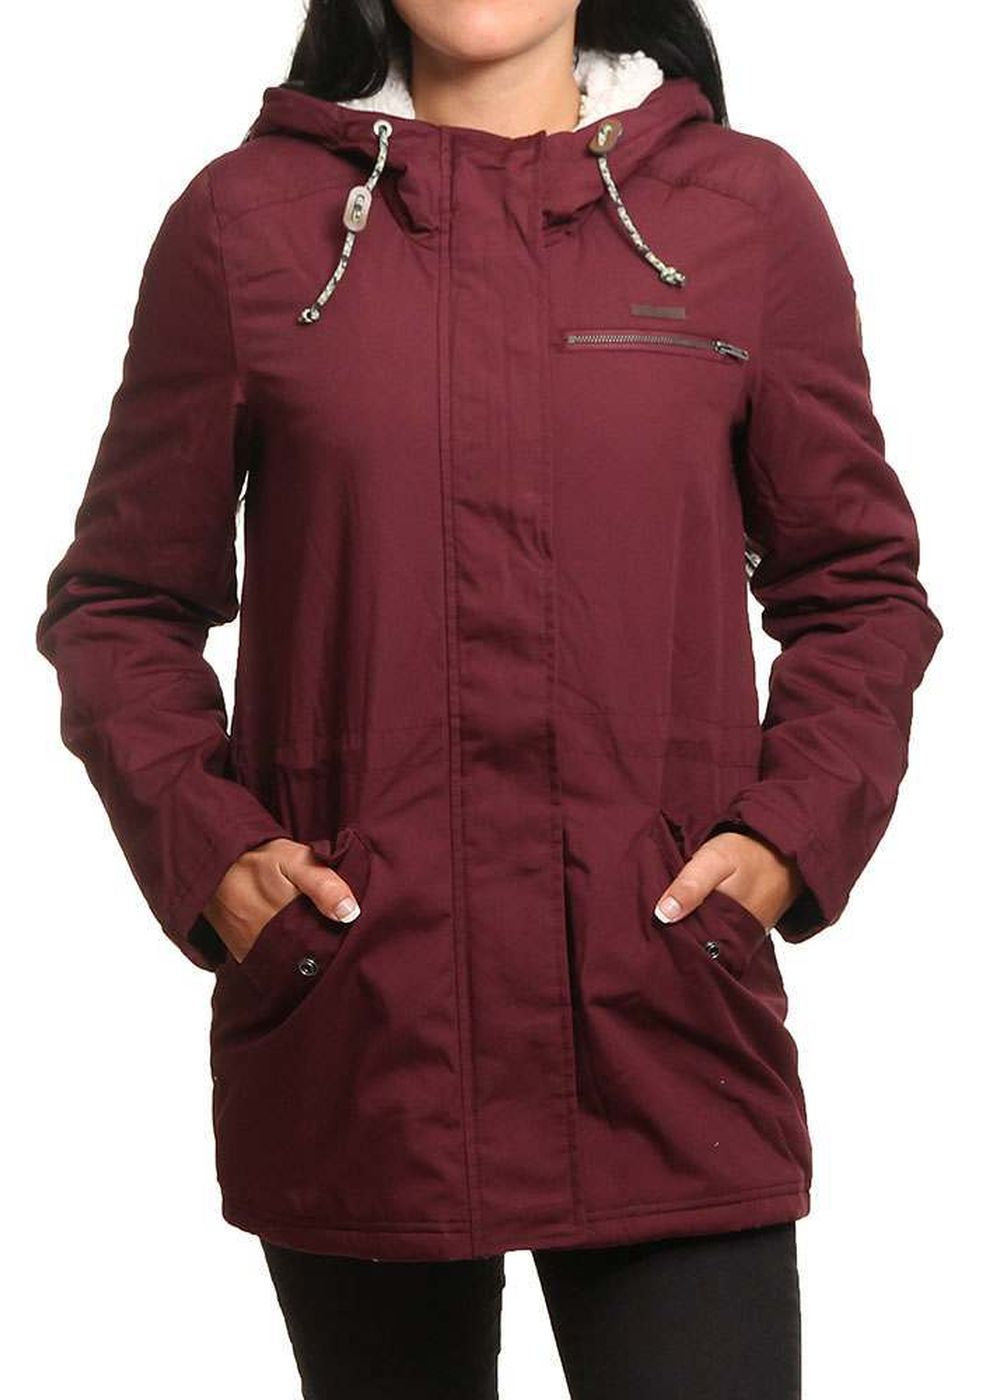 billabong-facil-iti-jacket-bordeaux